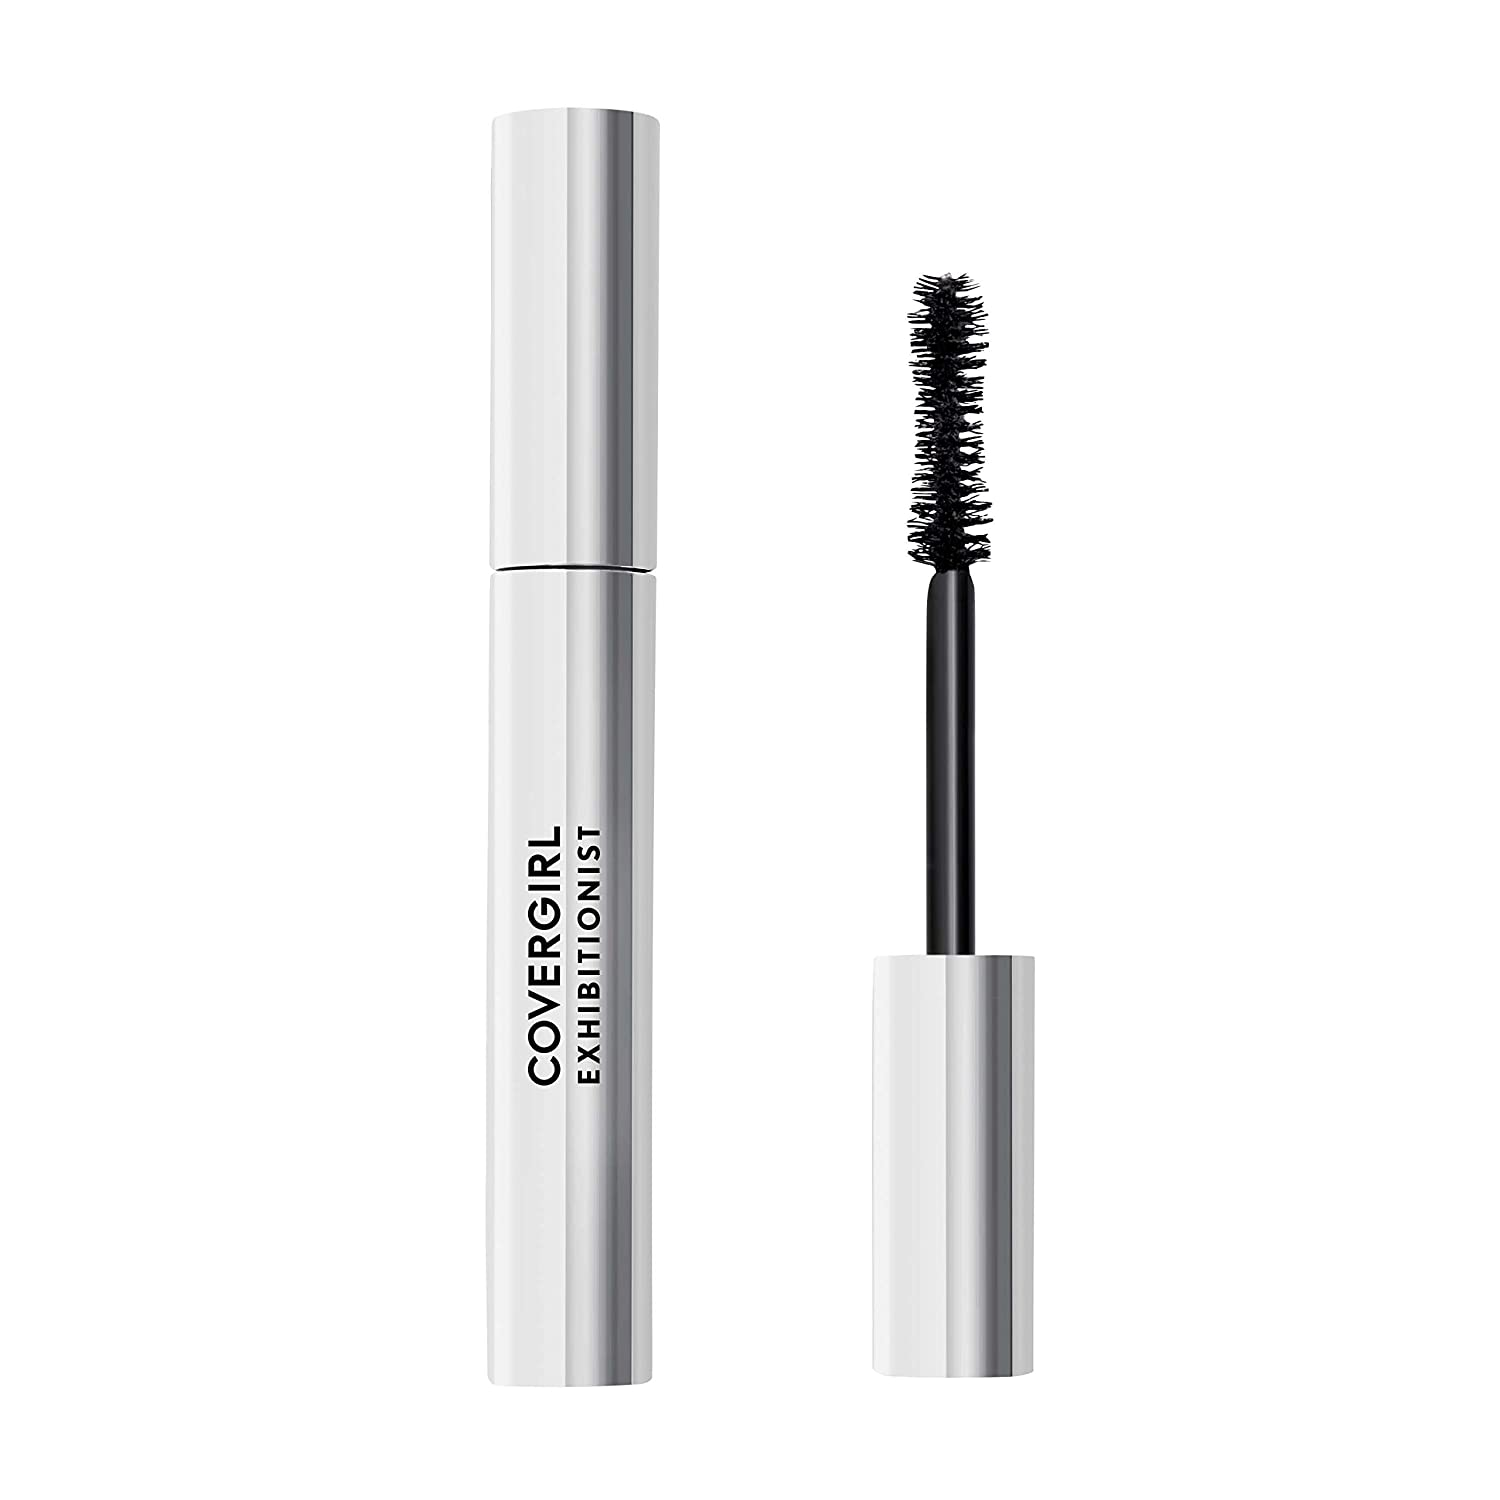 Max 59% OFF COVERGIRL Exhibitionist Mascara Topics on TV Black Very